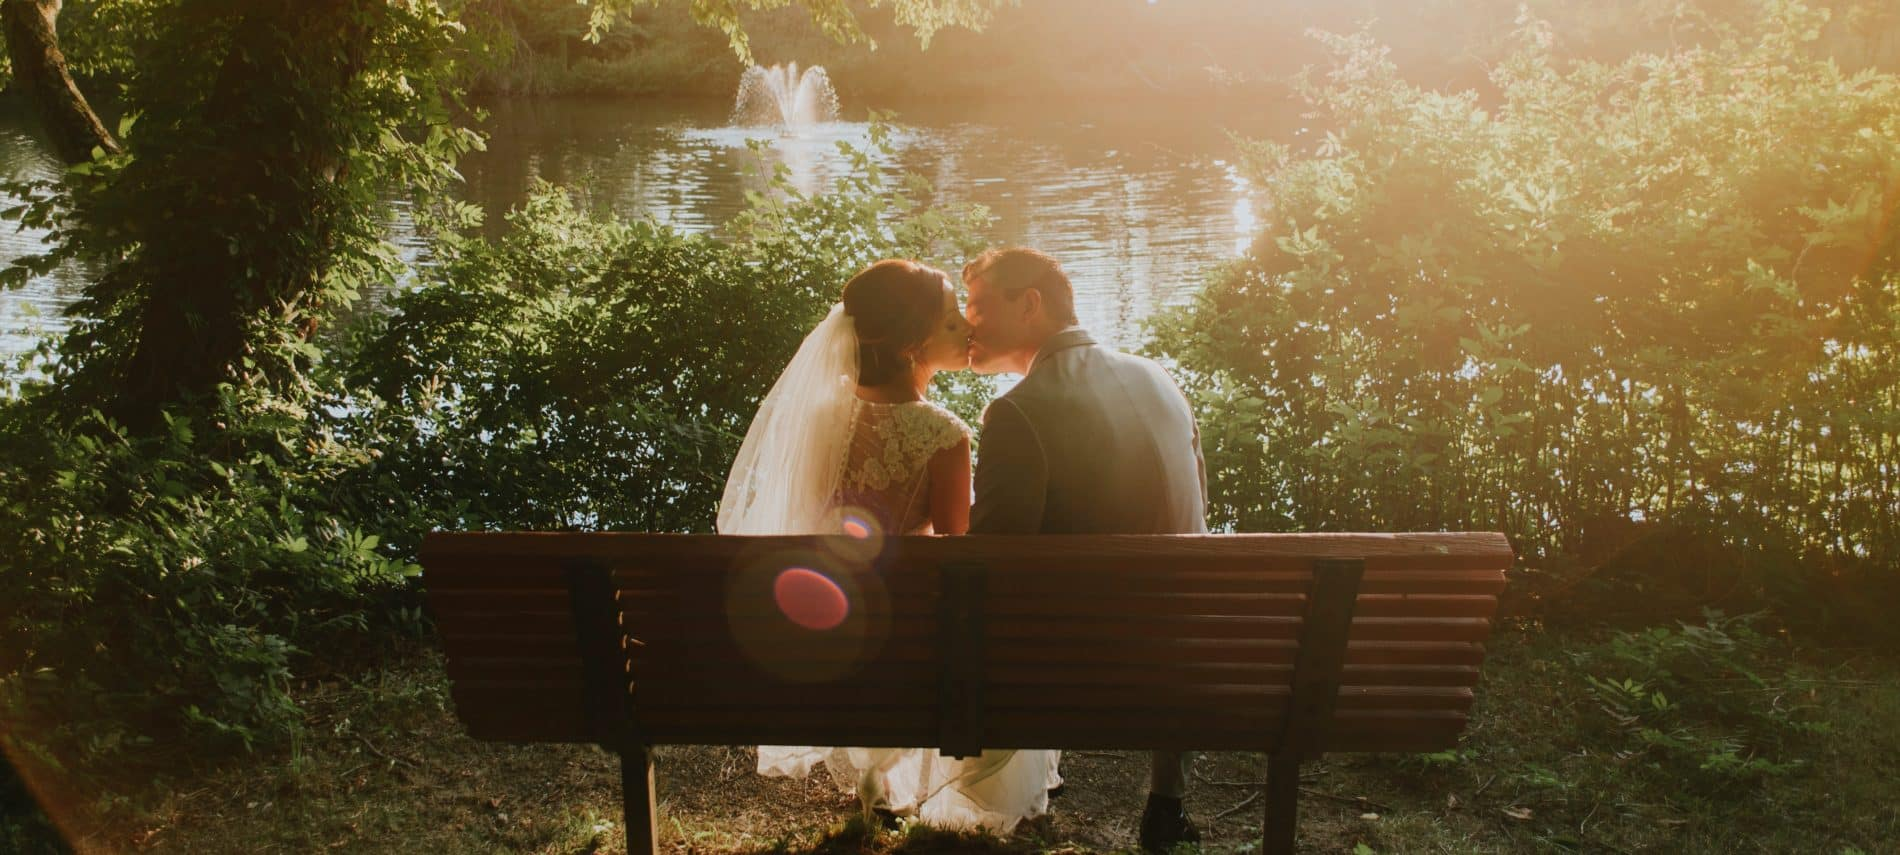 Bride and groom sitting on bench in park in front of lake kissing